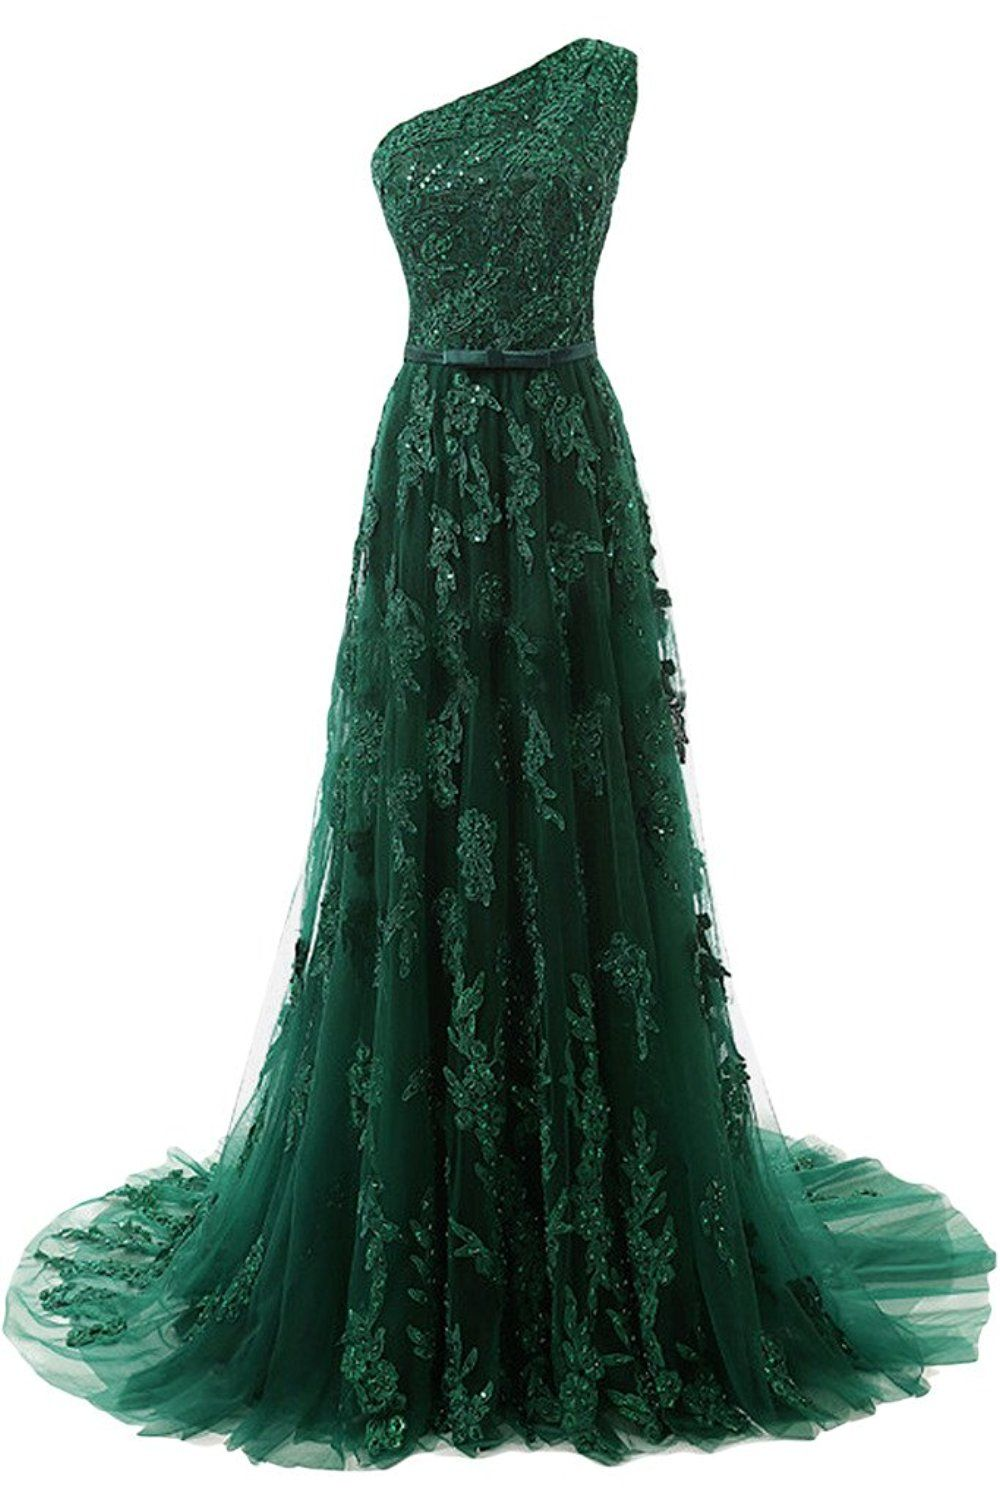 Dark Green Floor Length Lace Appliqués Tulle Evening Dressone